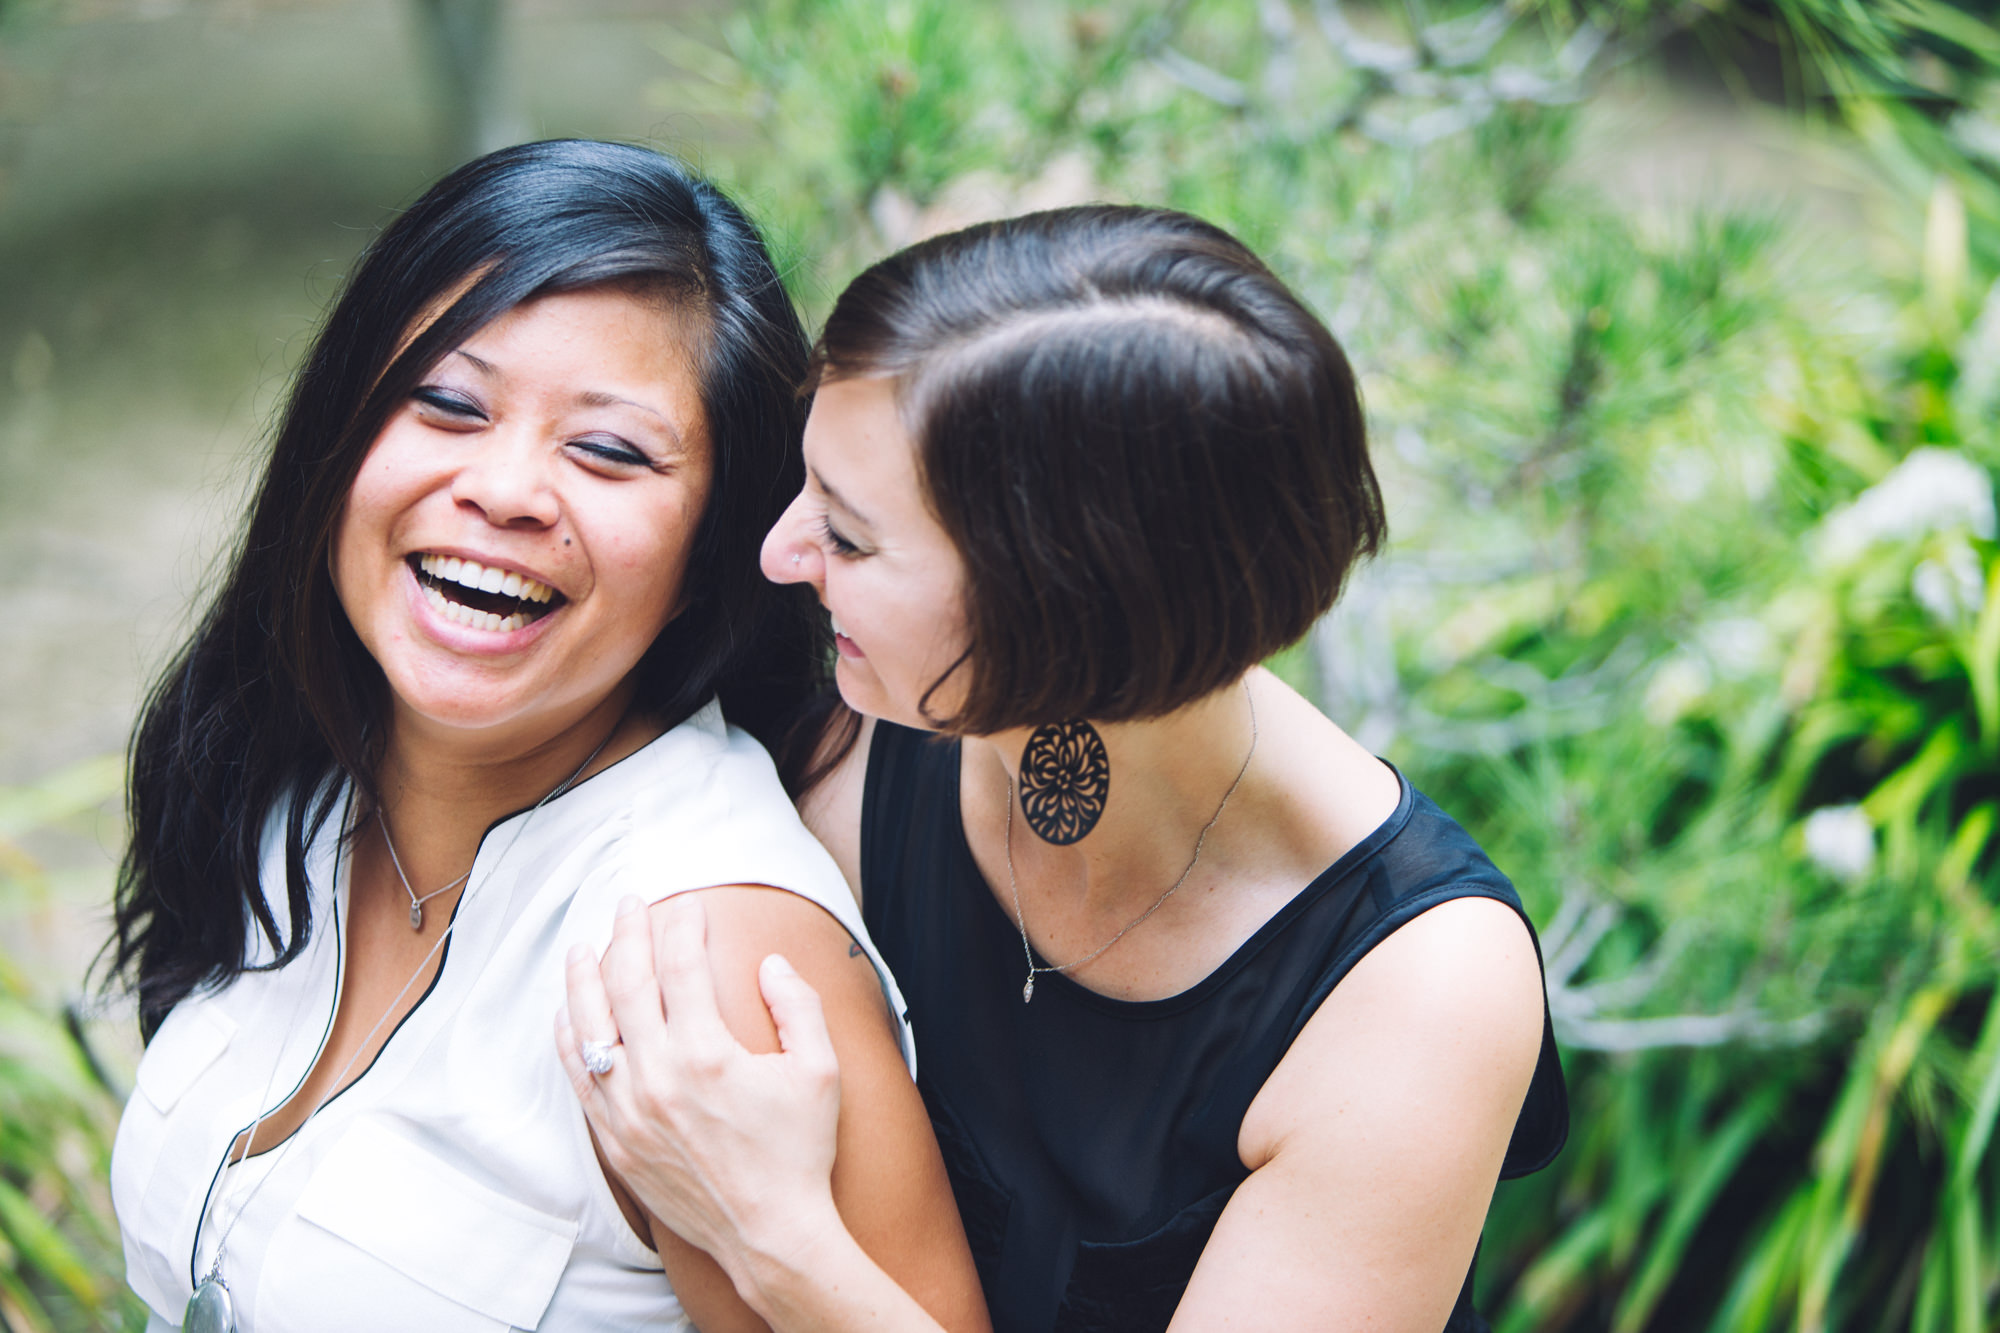 Dina_&_Stacy_Engagement_Photography_The_Light_&_Glass-022.jpg